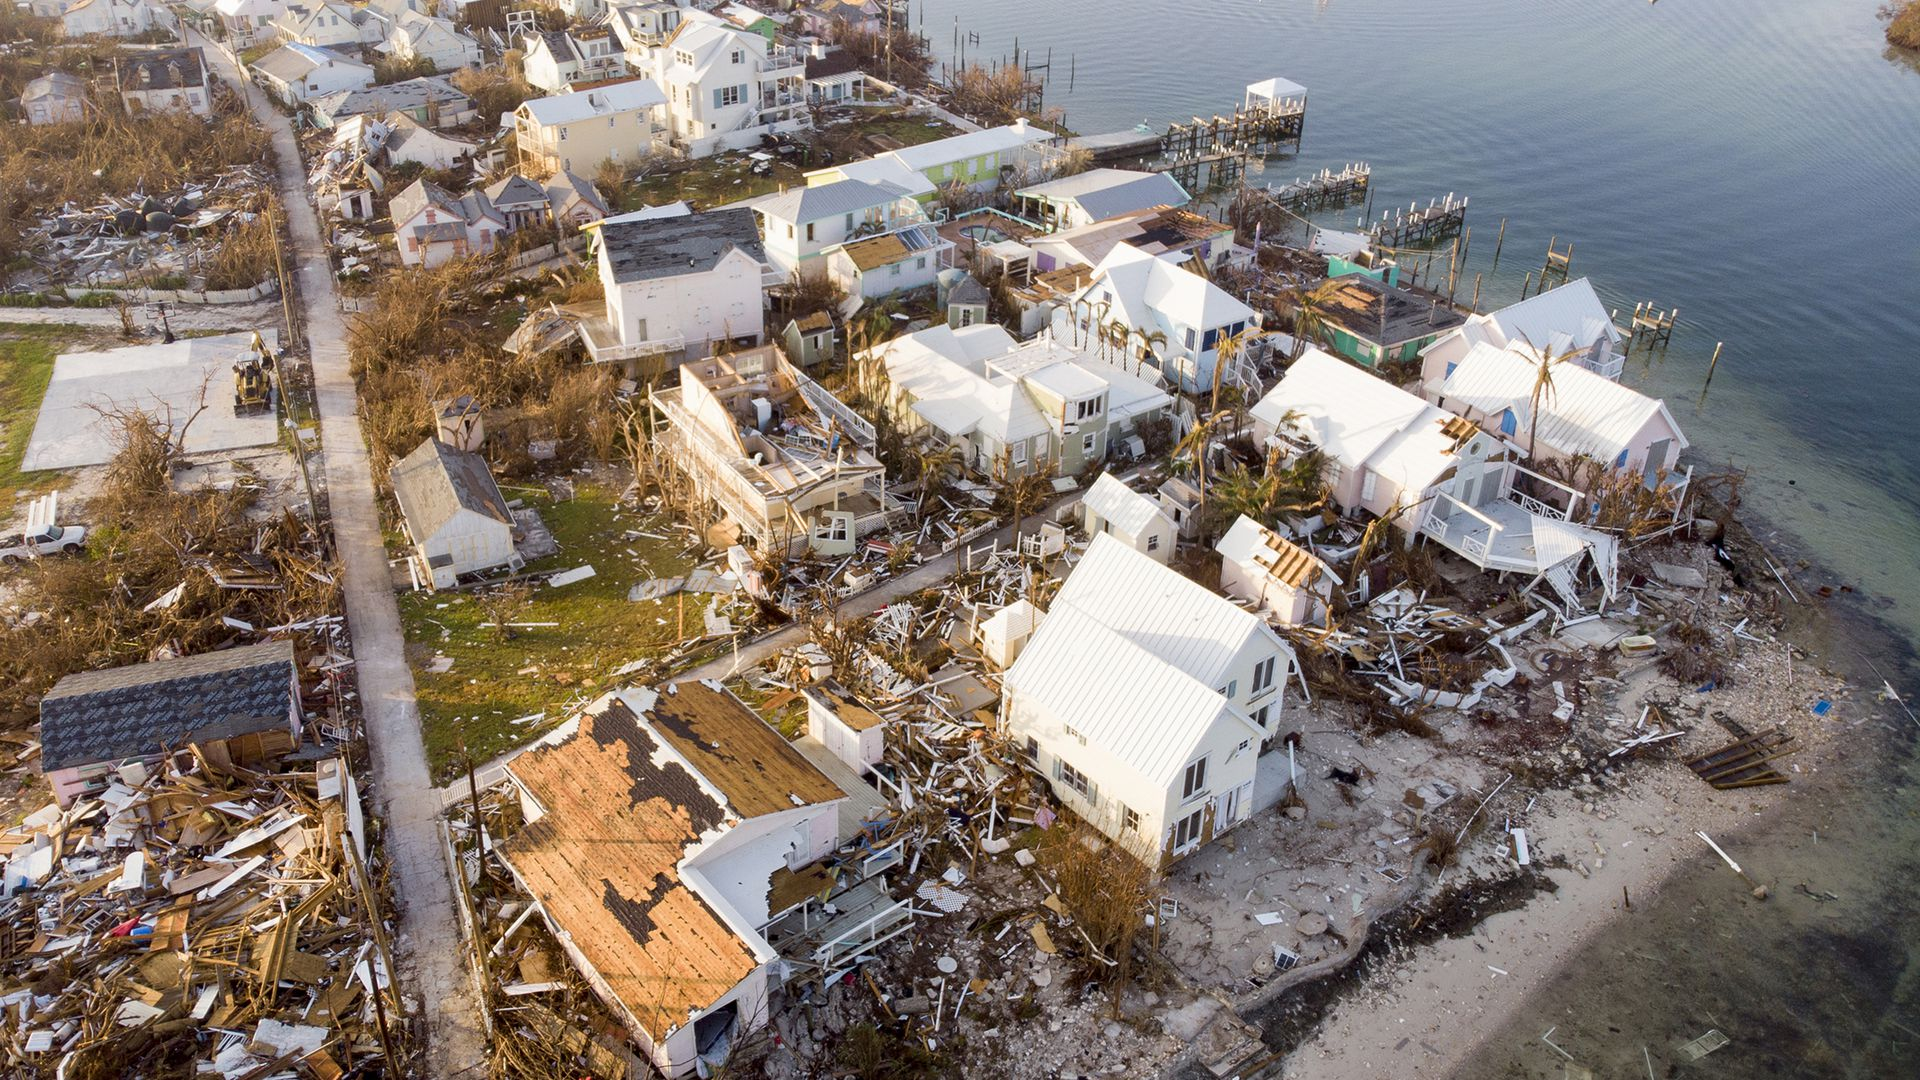 Homes wrecked in Hurricane Dorian's aftermath in the Bahamas